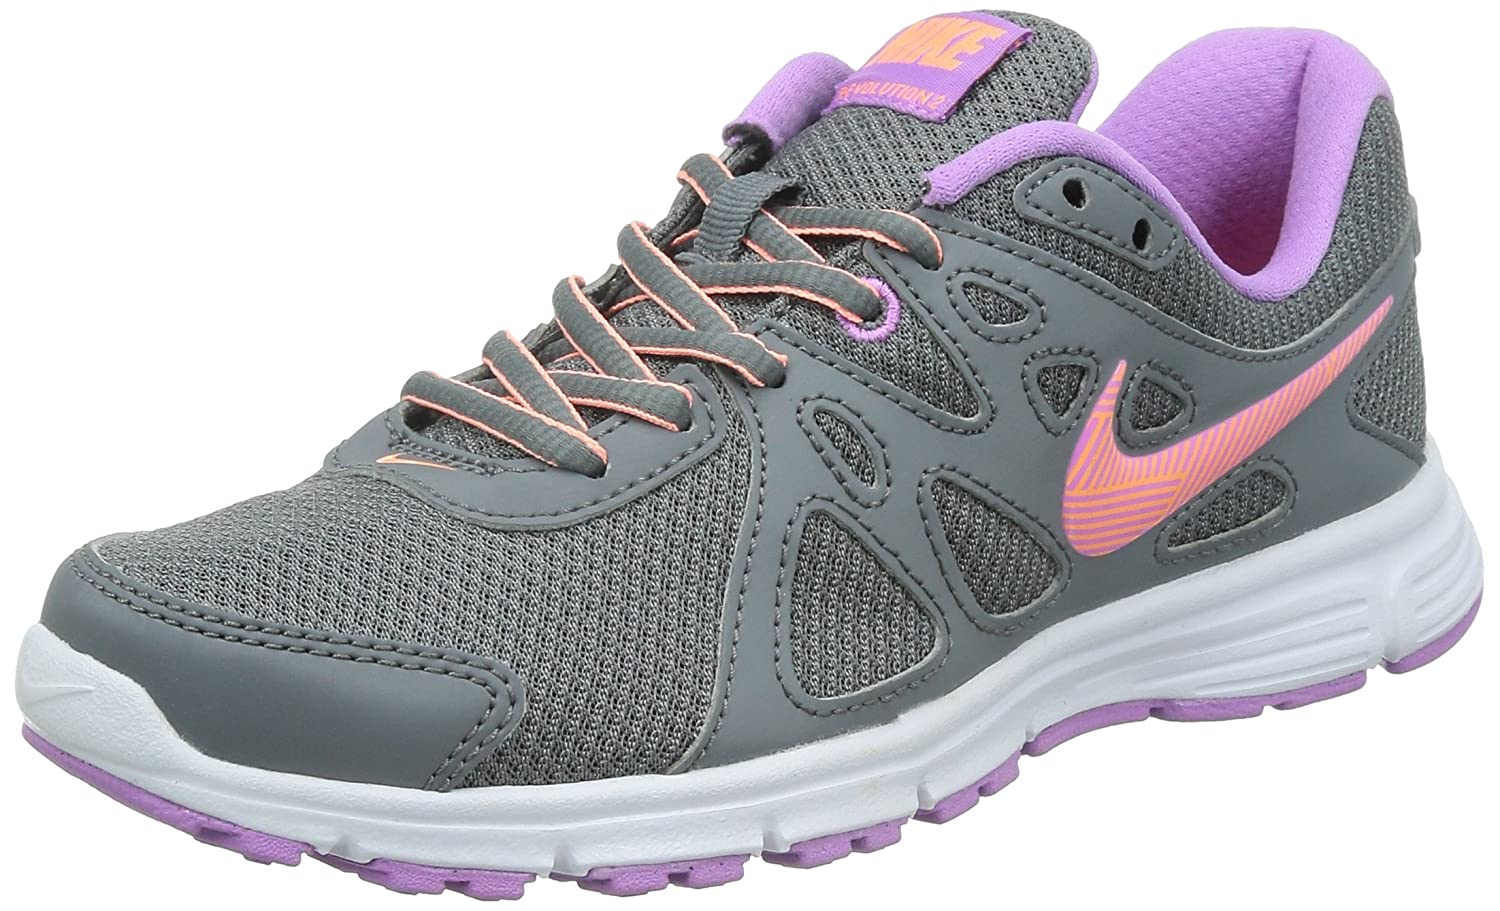 1a14487b6c719 Nike Men's Revolution 2 MSL Running Shoes